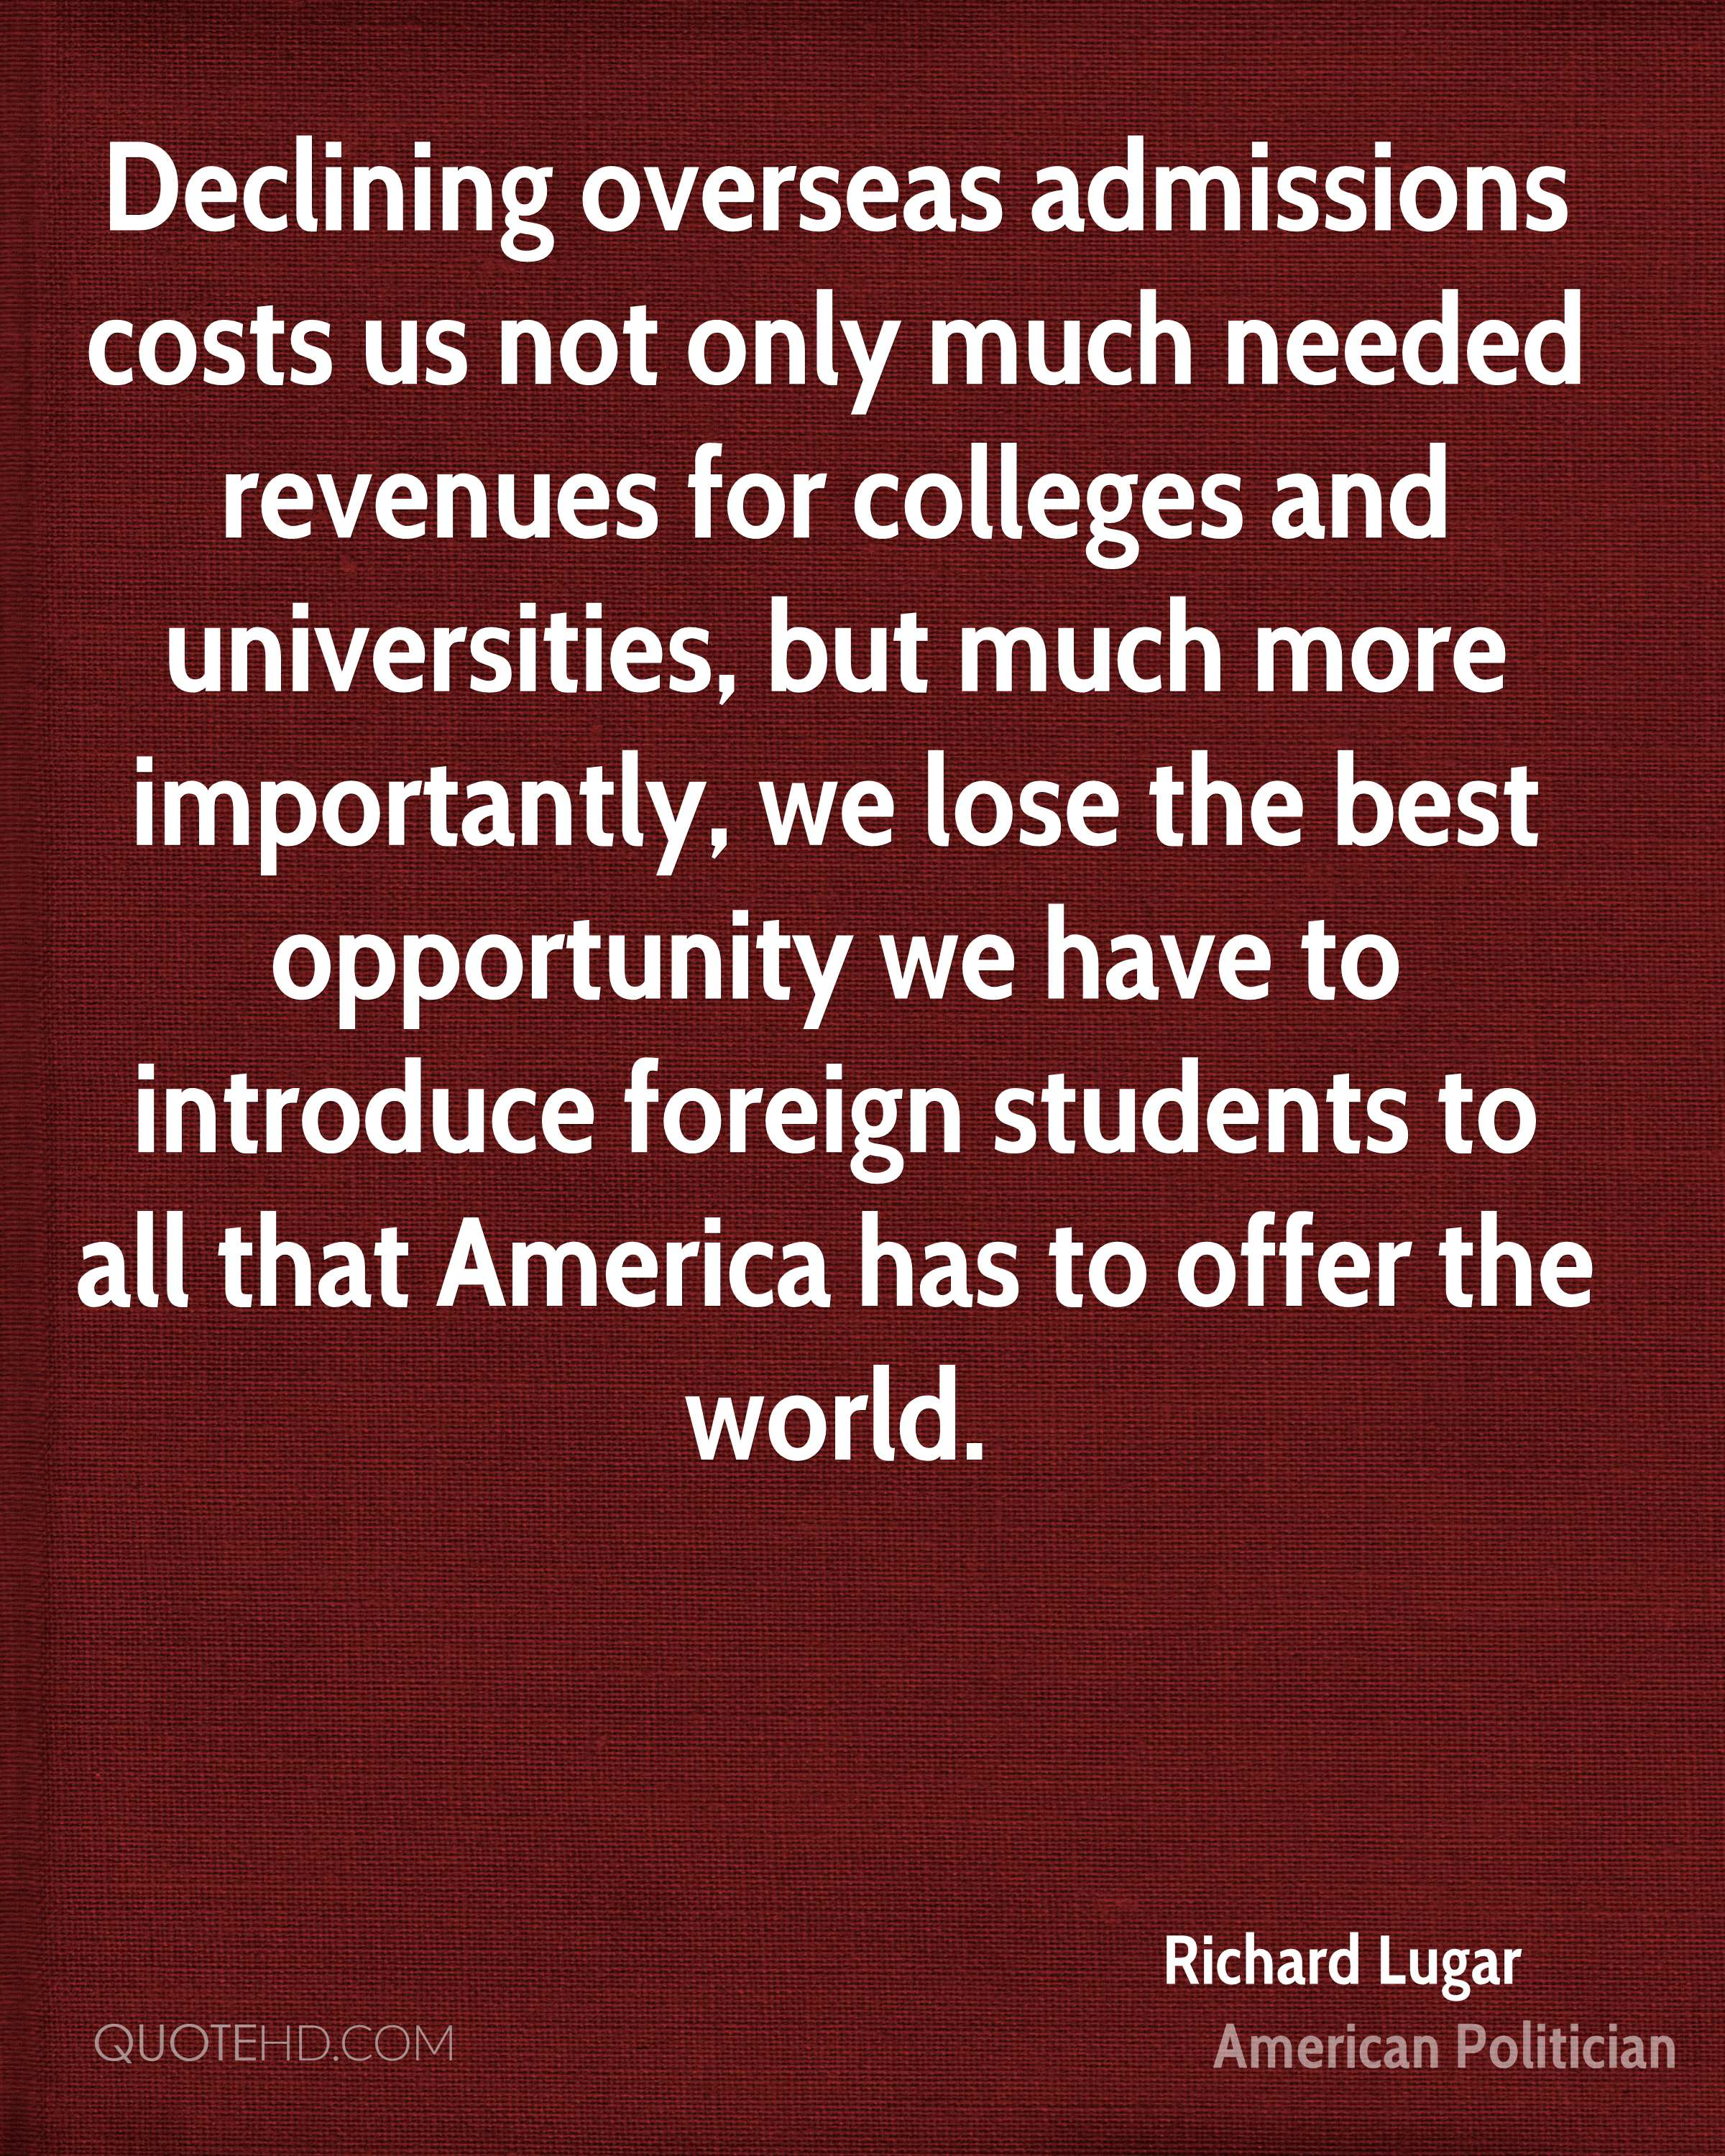 Declining overseas admissions costs us not only much needed revenues for colleges and universities, but much more importantly, we lose the best opportunity we have to introduce foreign students to all that America has to offer the world.